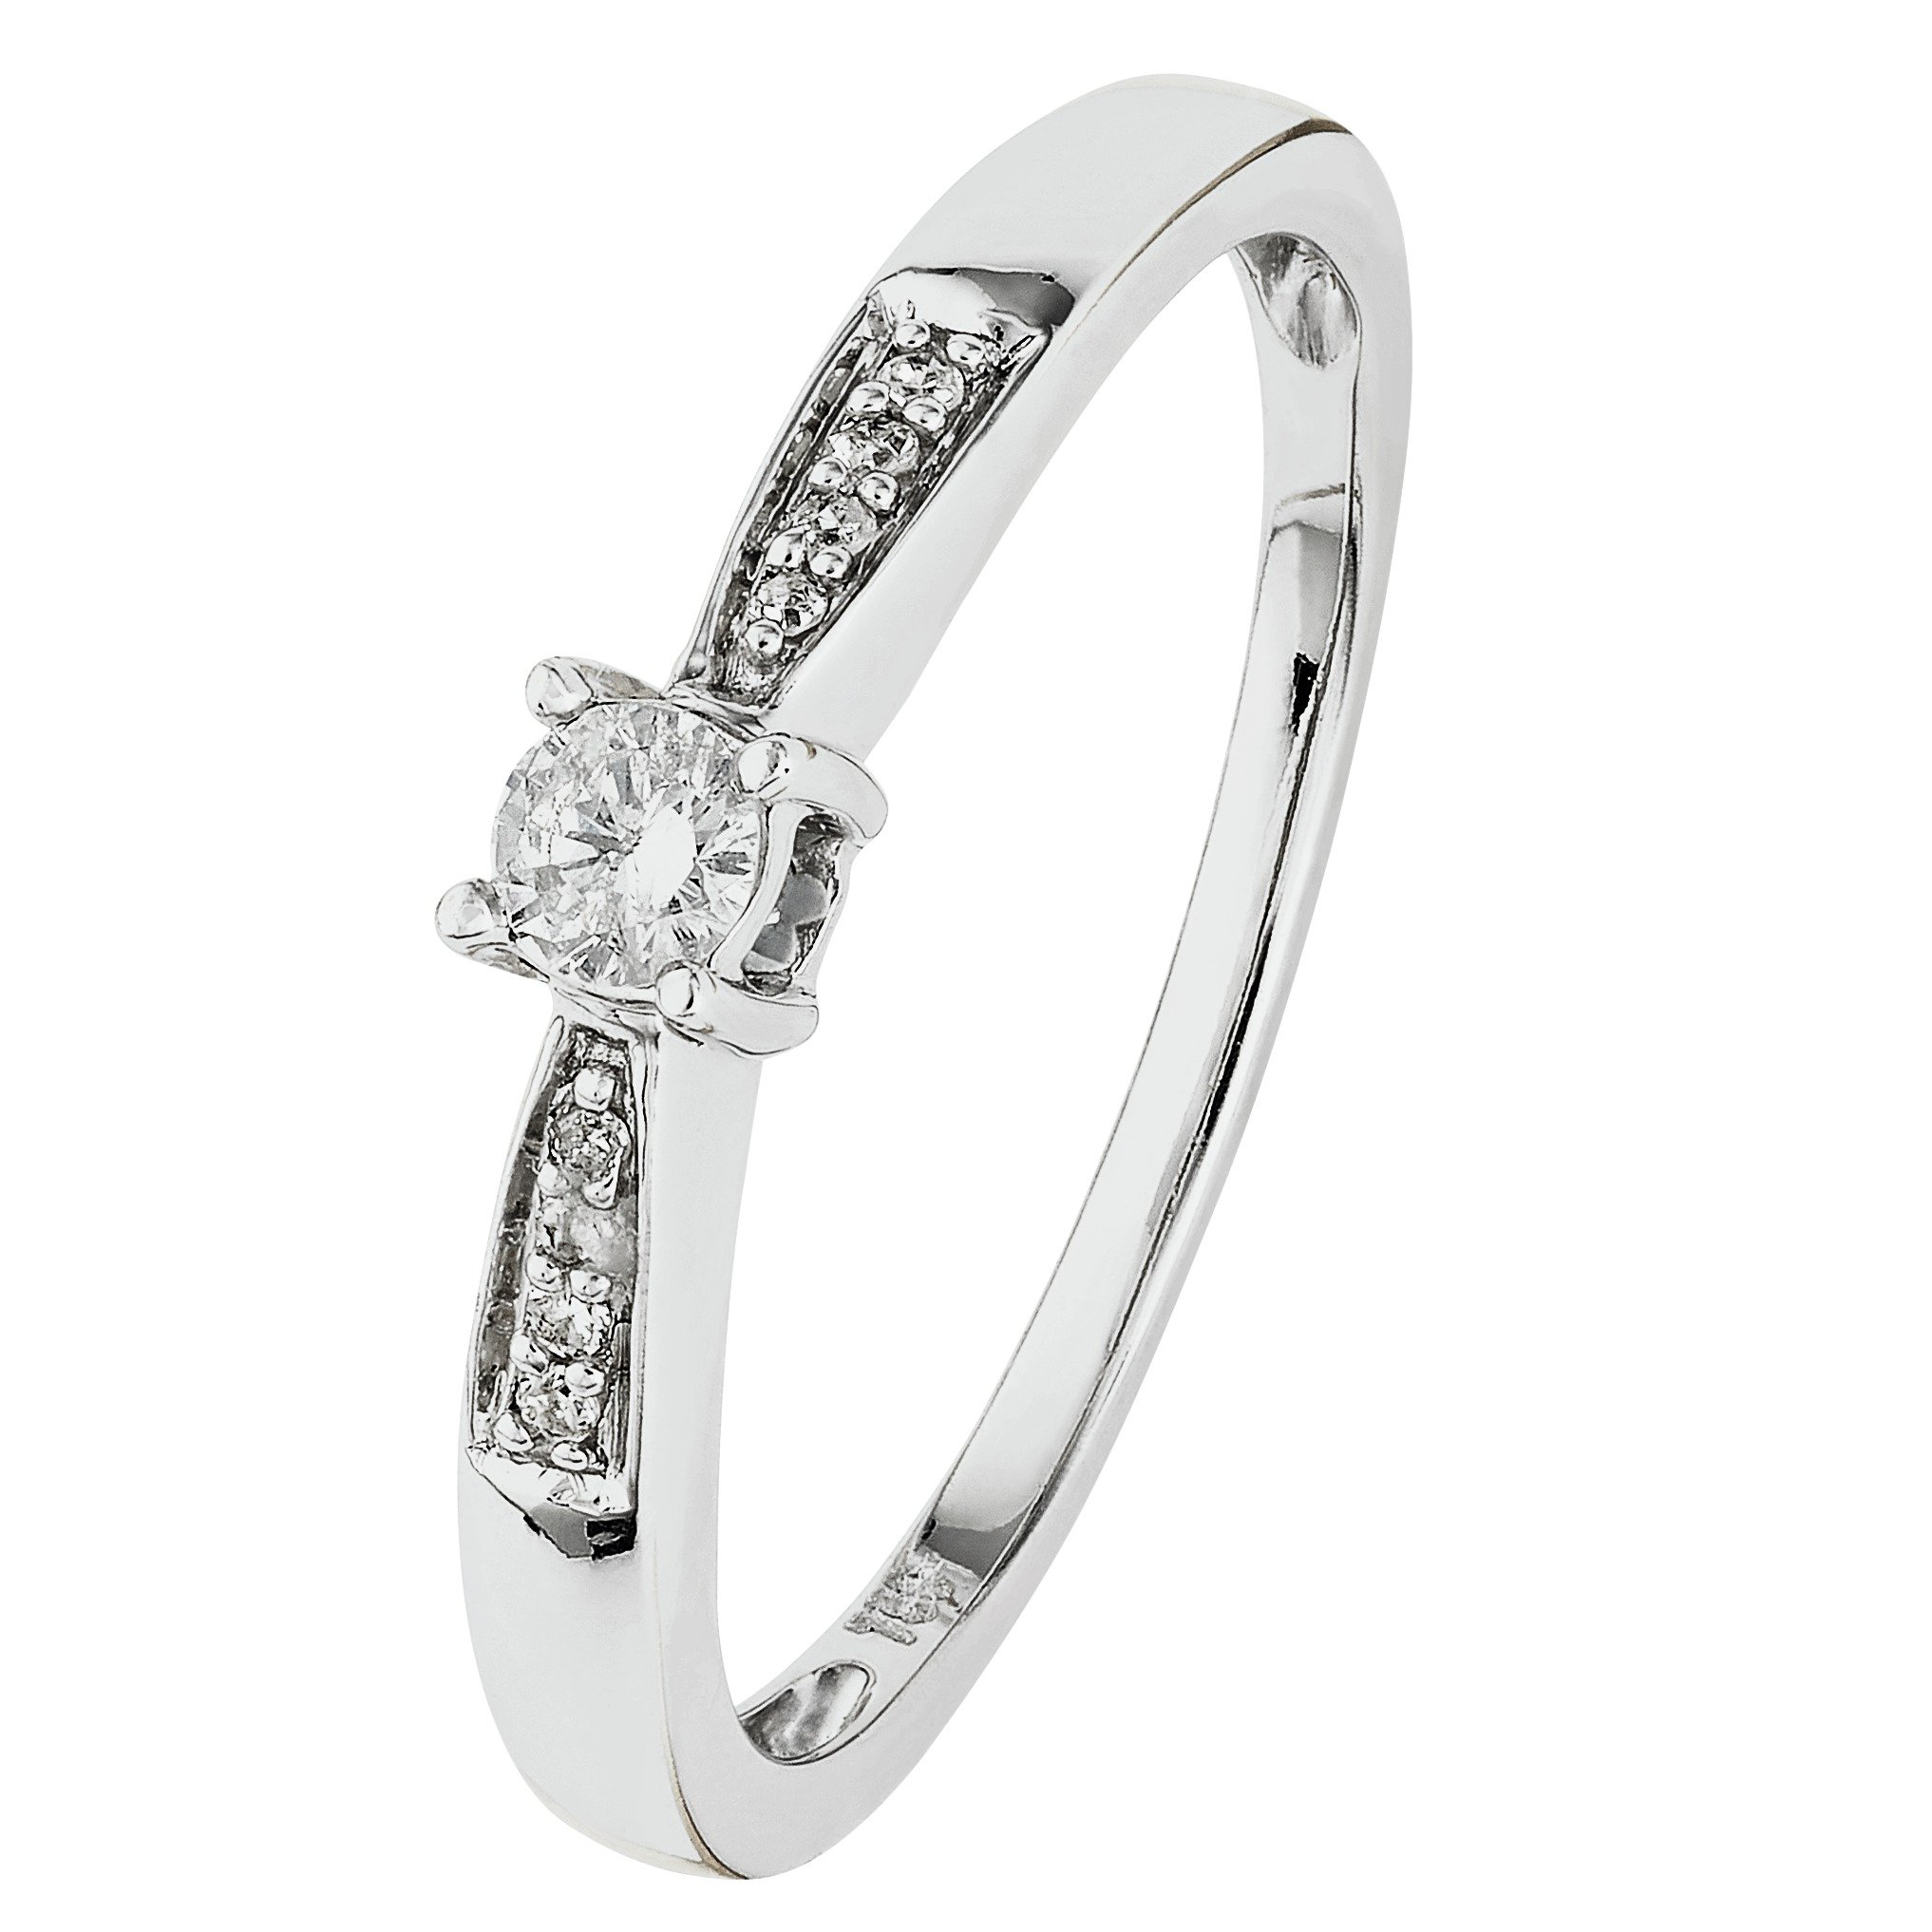 18 Carat White Gold 010 Carat Diamond - Solitaire Ring